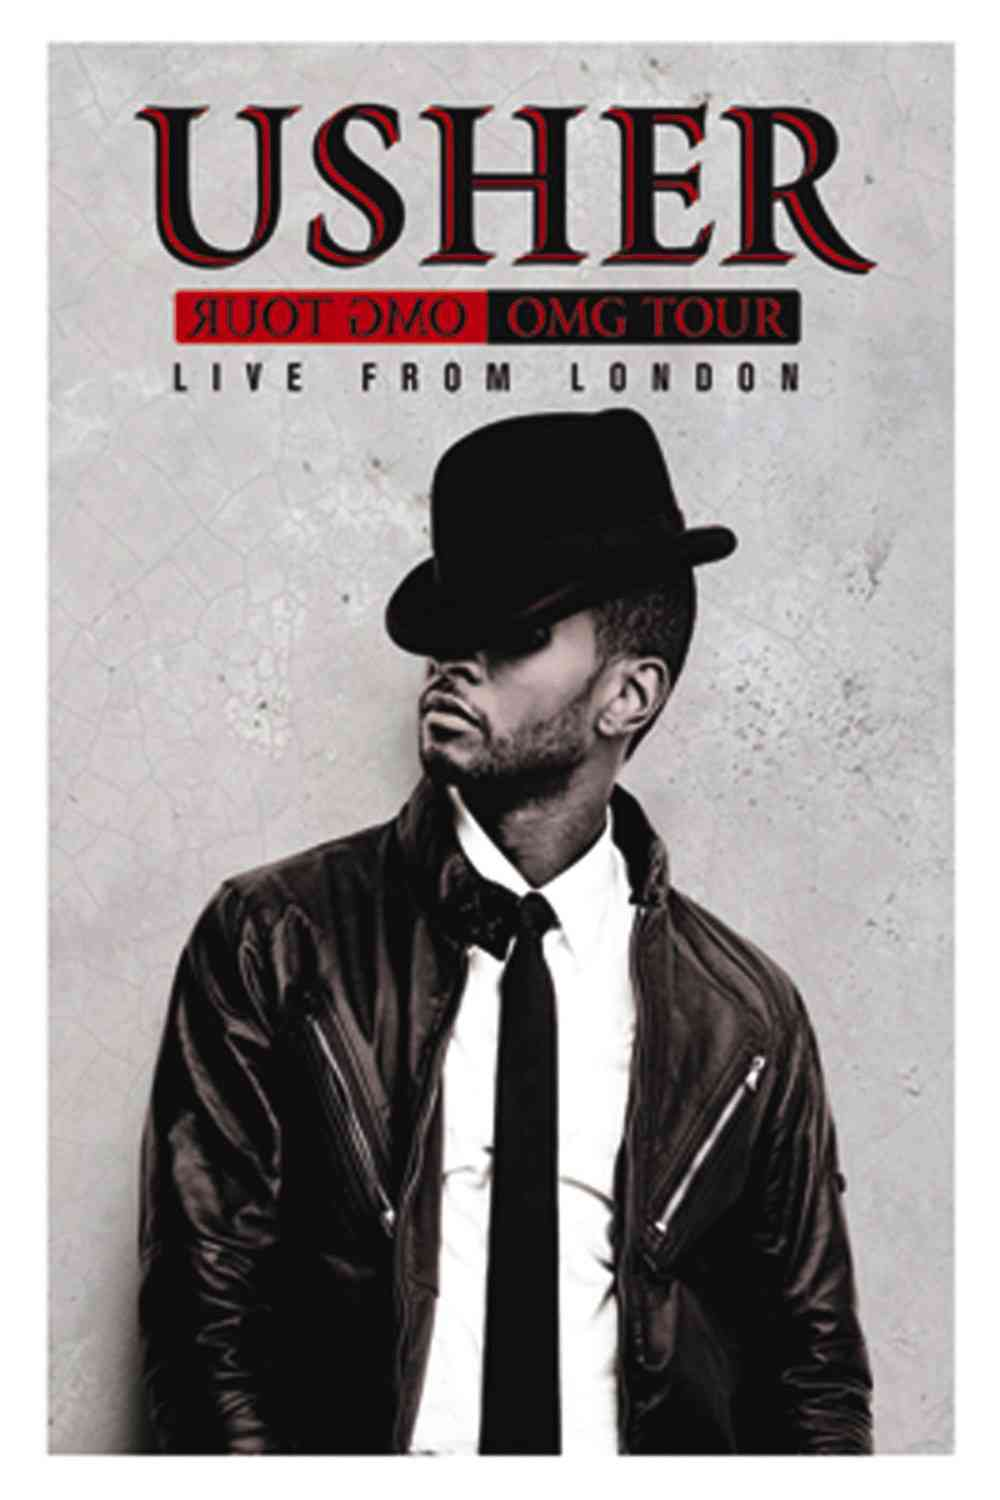 OMG TOUR:LIVE FROM LONDON BY USHER (DVD)